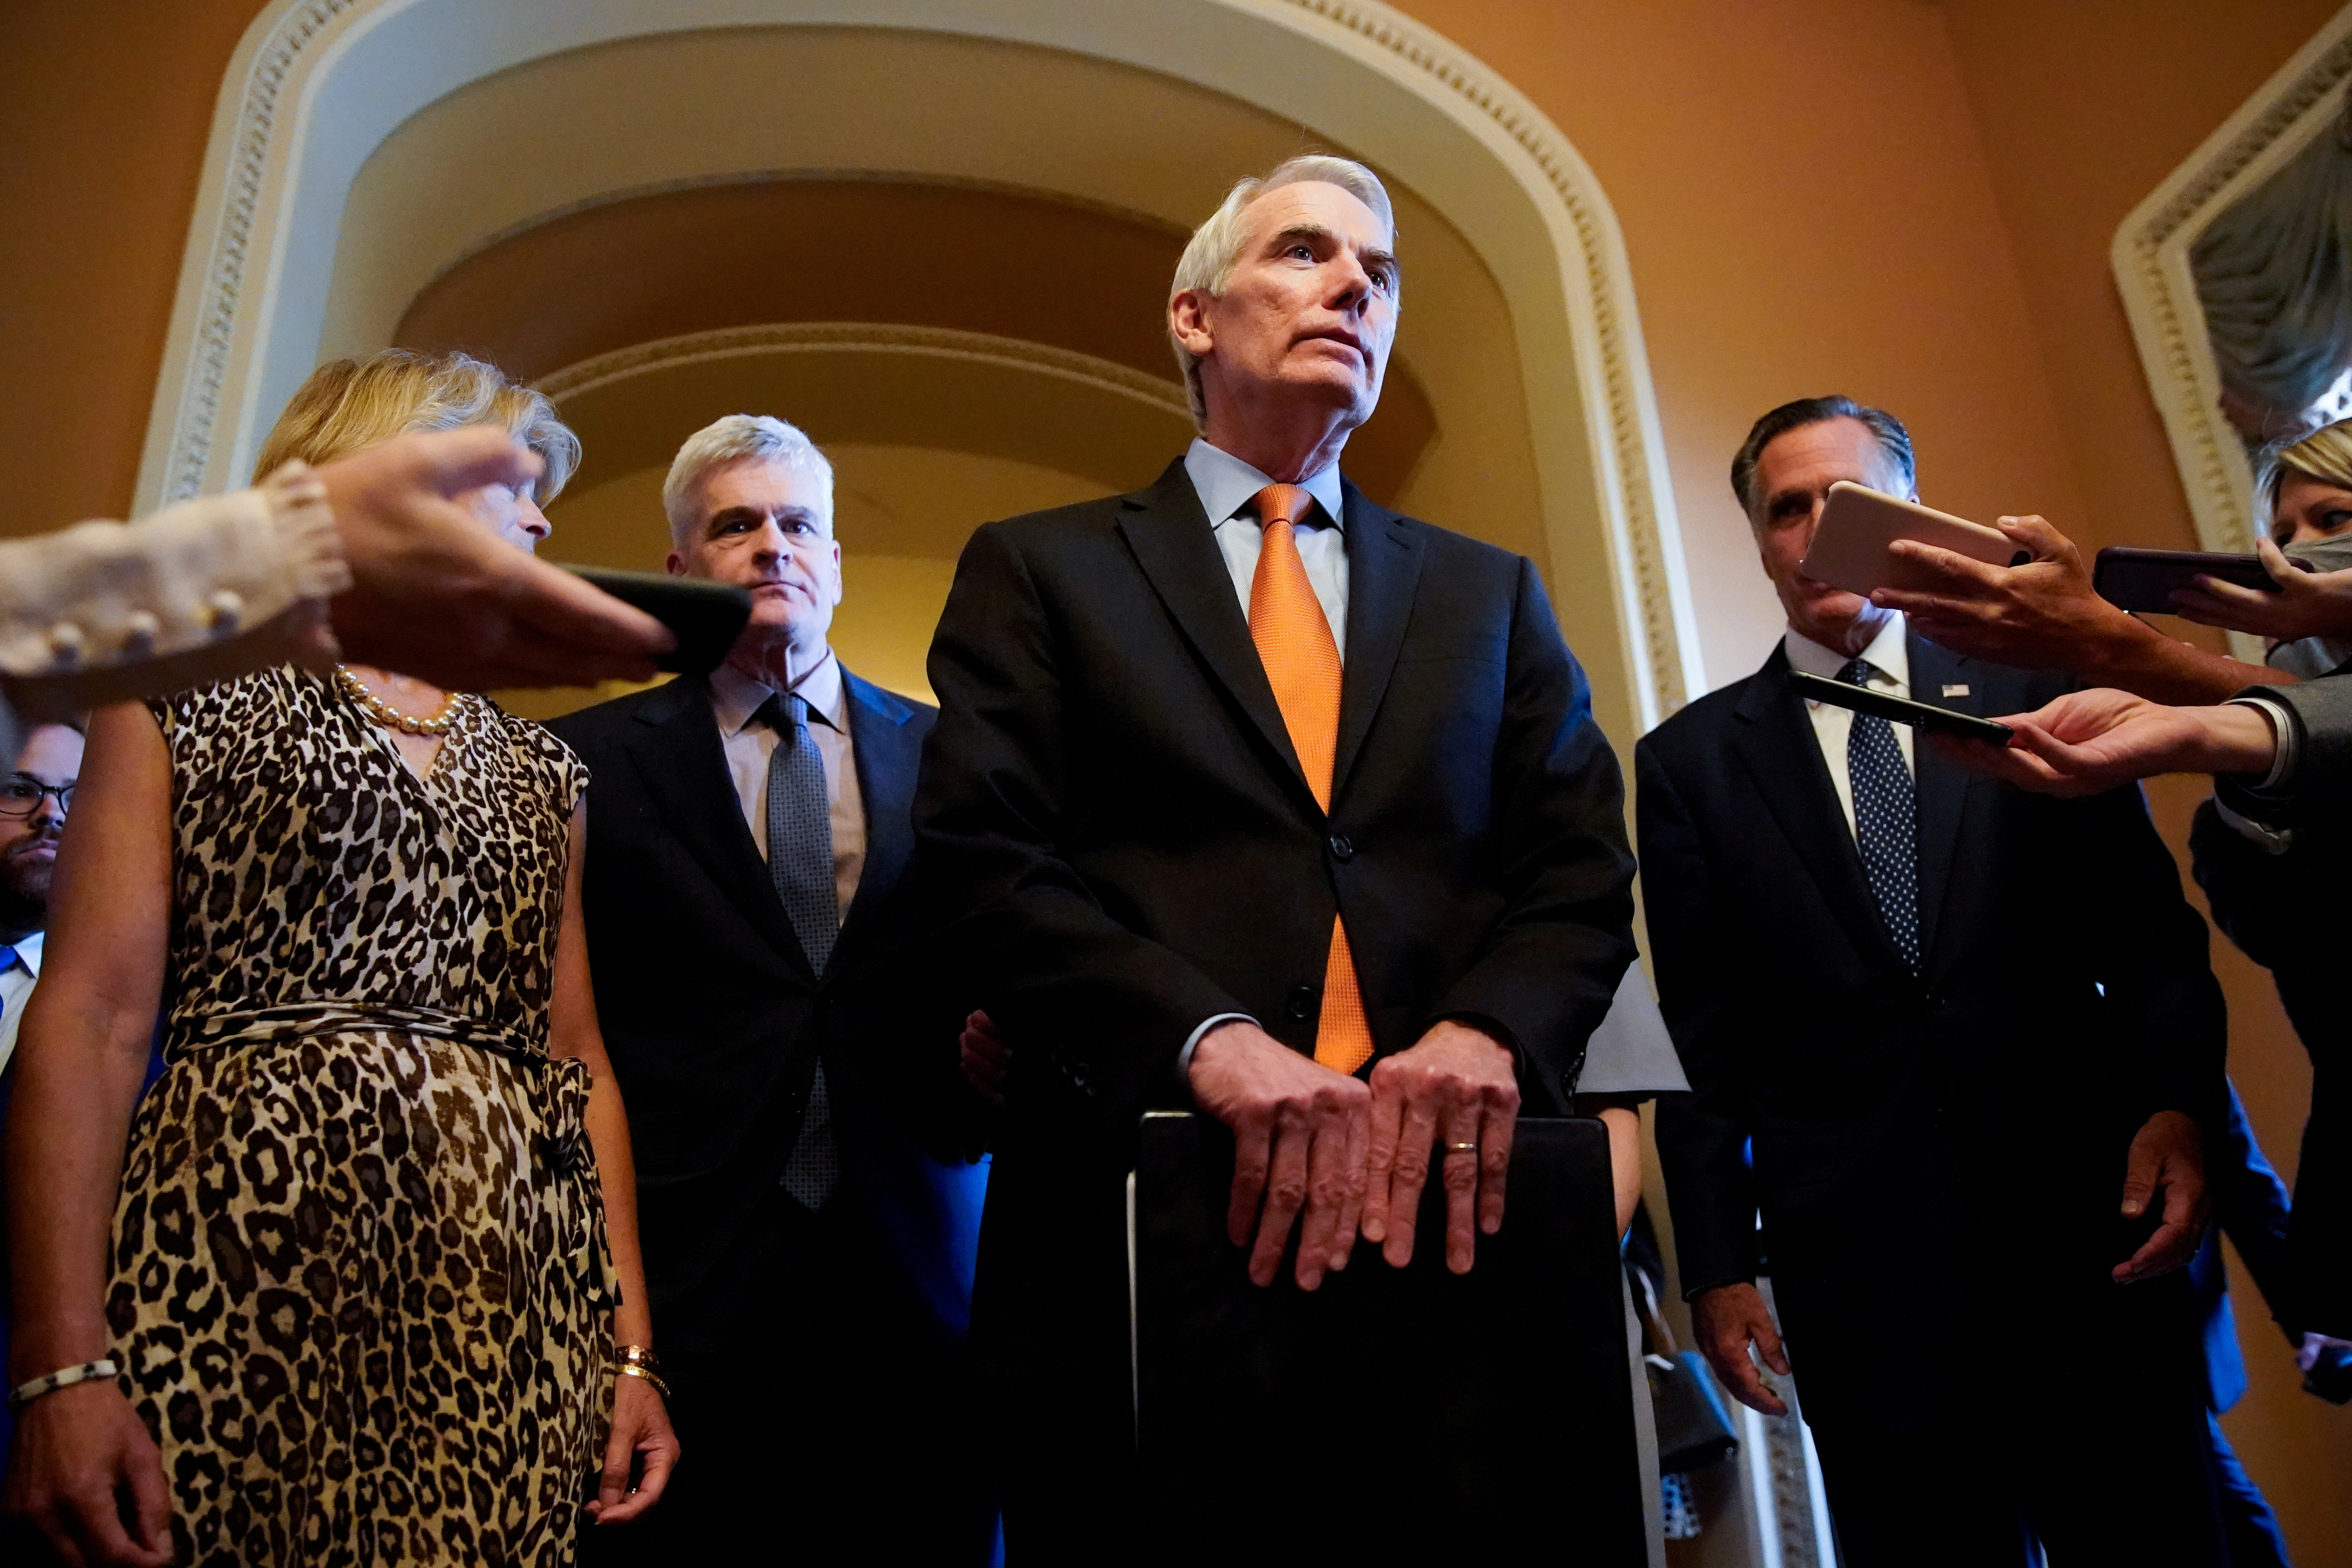 Senator Rob Portman (R-OH) speaks to reporters while announcing on an agreement on infrastructure with Senators Lisa Murkowski (R-AK), Bill Cassidy (R-LA), Susan Collins (R-ME) and Mitt Romney (R-UT) after meeting in Senate Minority Leader Mitch McConnell's office at the U.S. Capitol in Washington, U.S., July 28, 2021. REUTERS/Elizabeth Frantz/File Photo